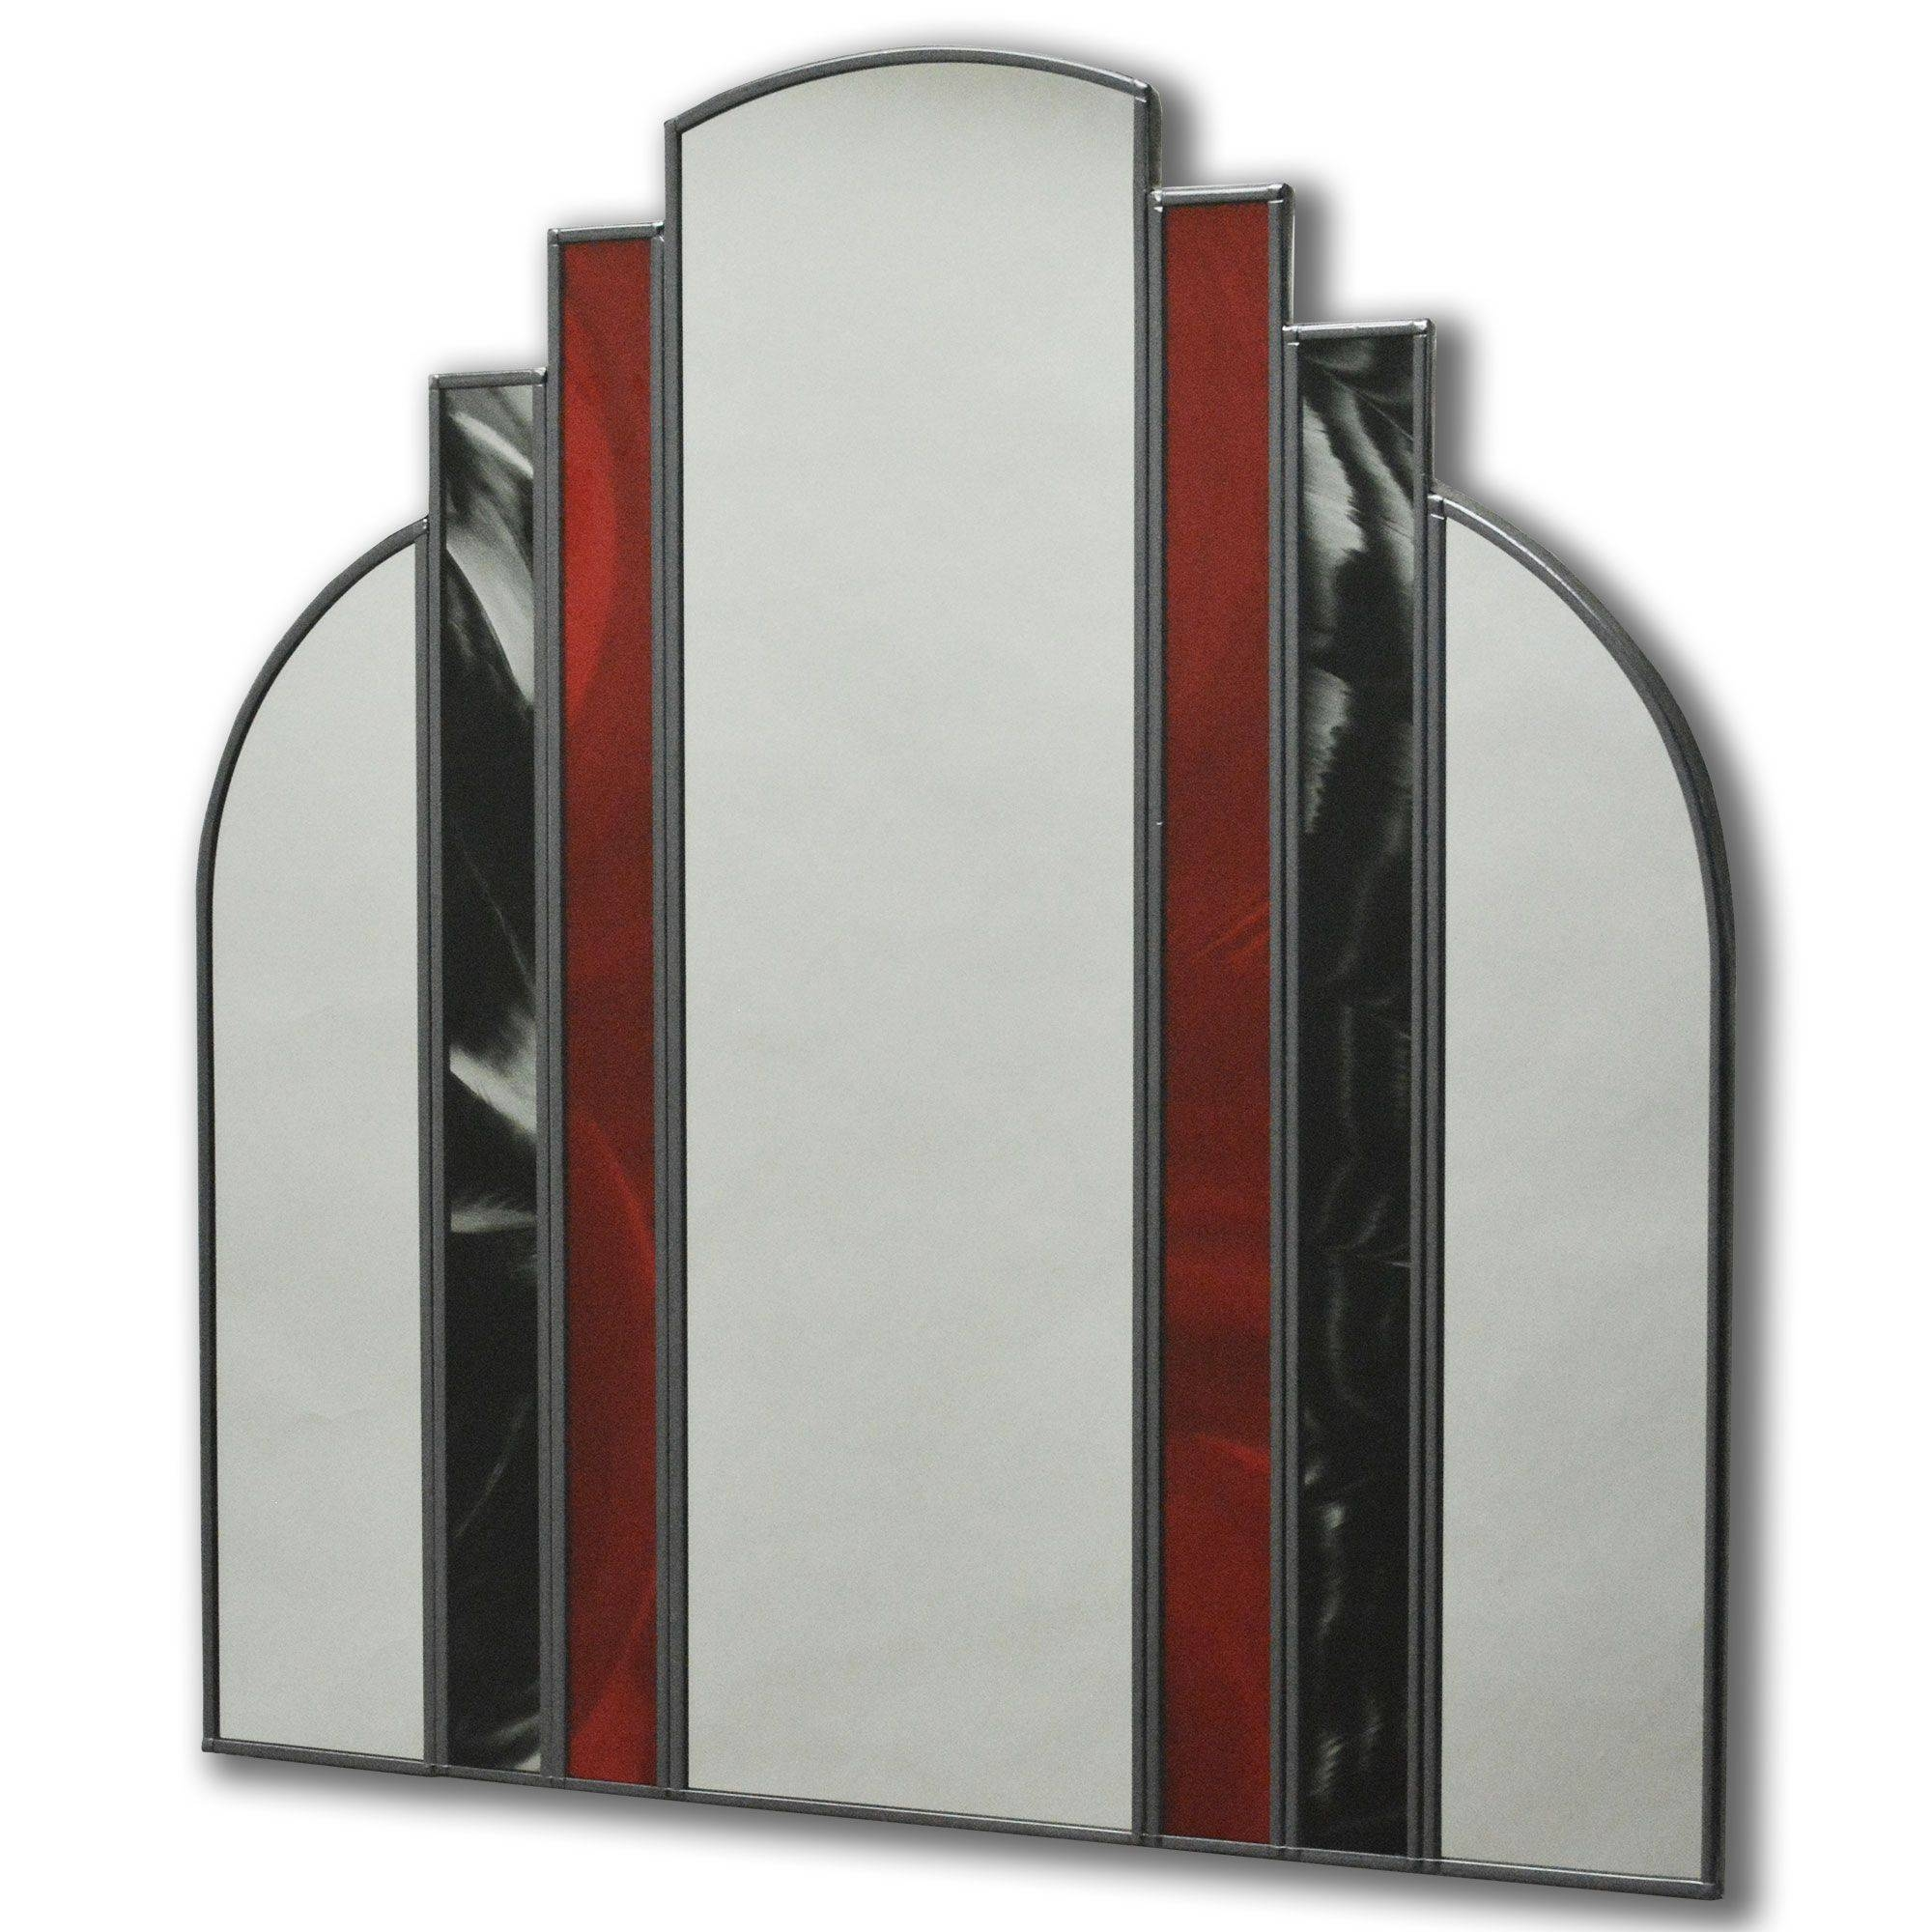 Bathroom Design Series: Art Deco Style ⋆ Back2Bath within Art Deco Style Bathroom Mirrors (Image 16 of 25)